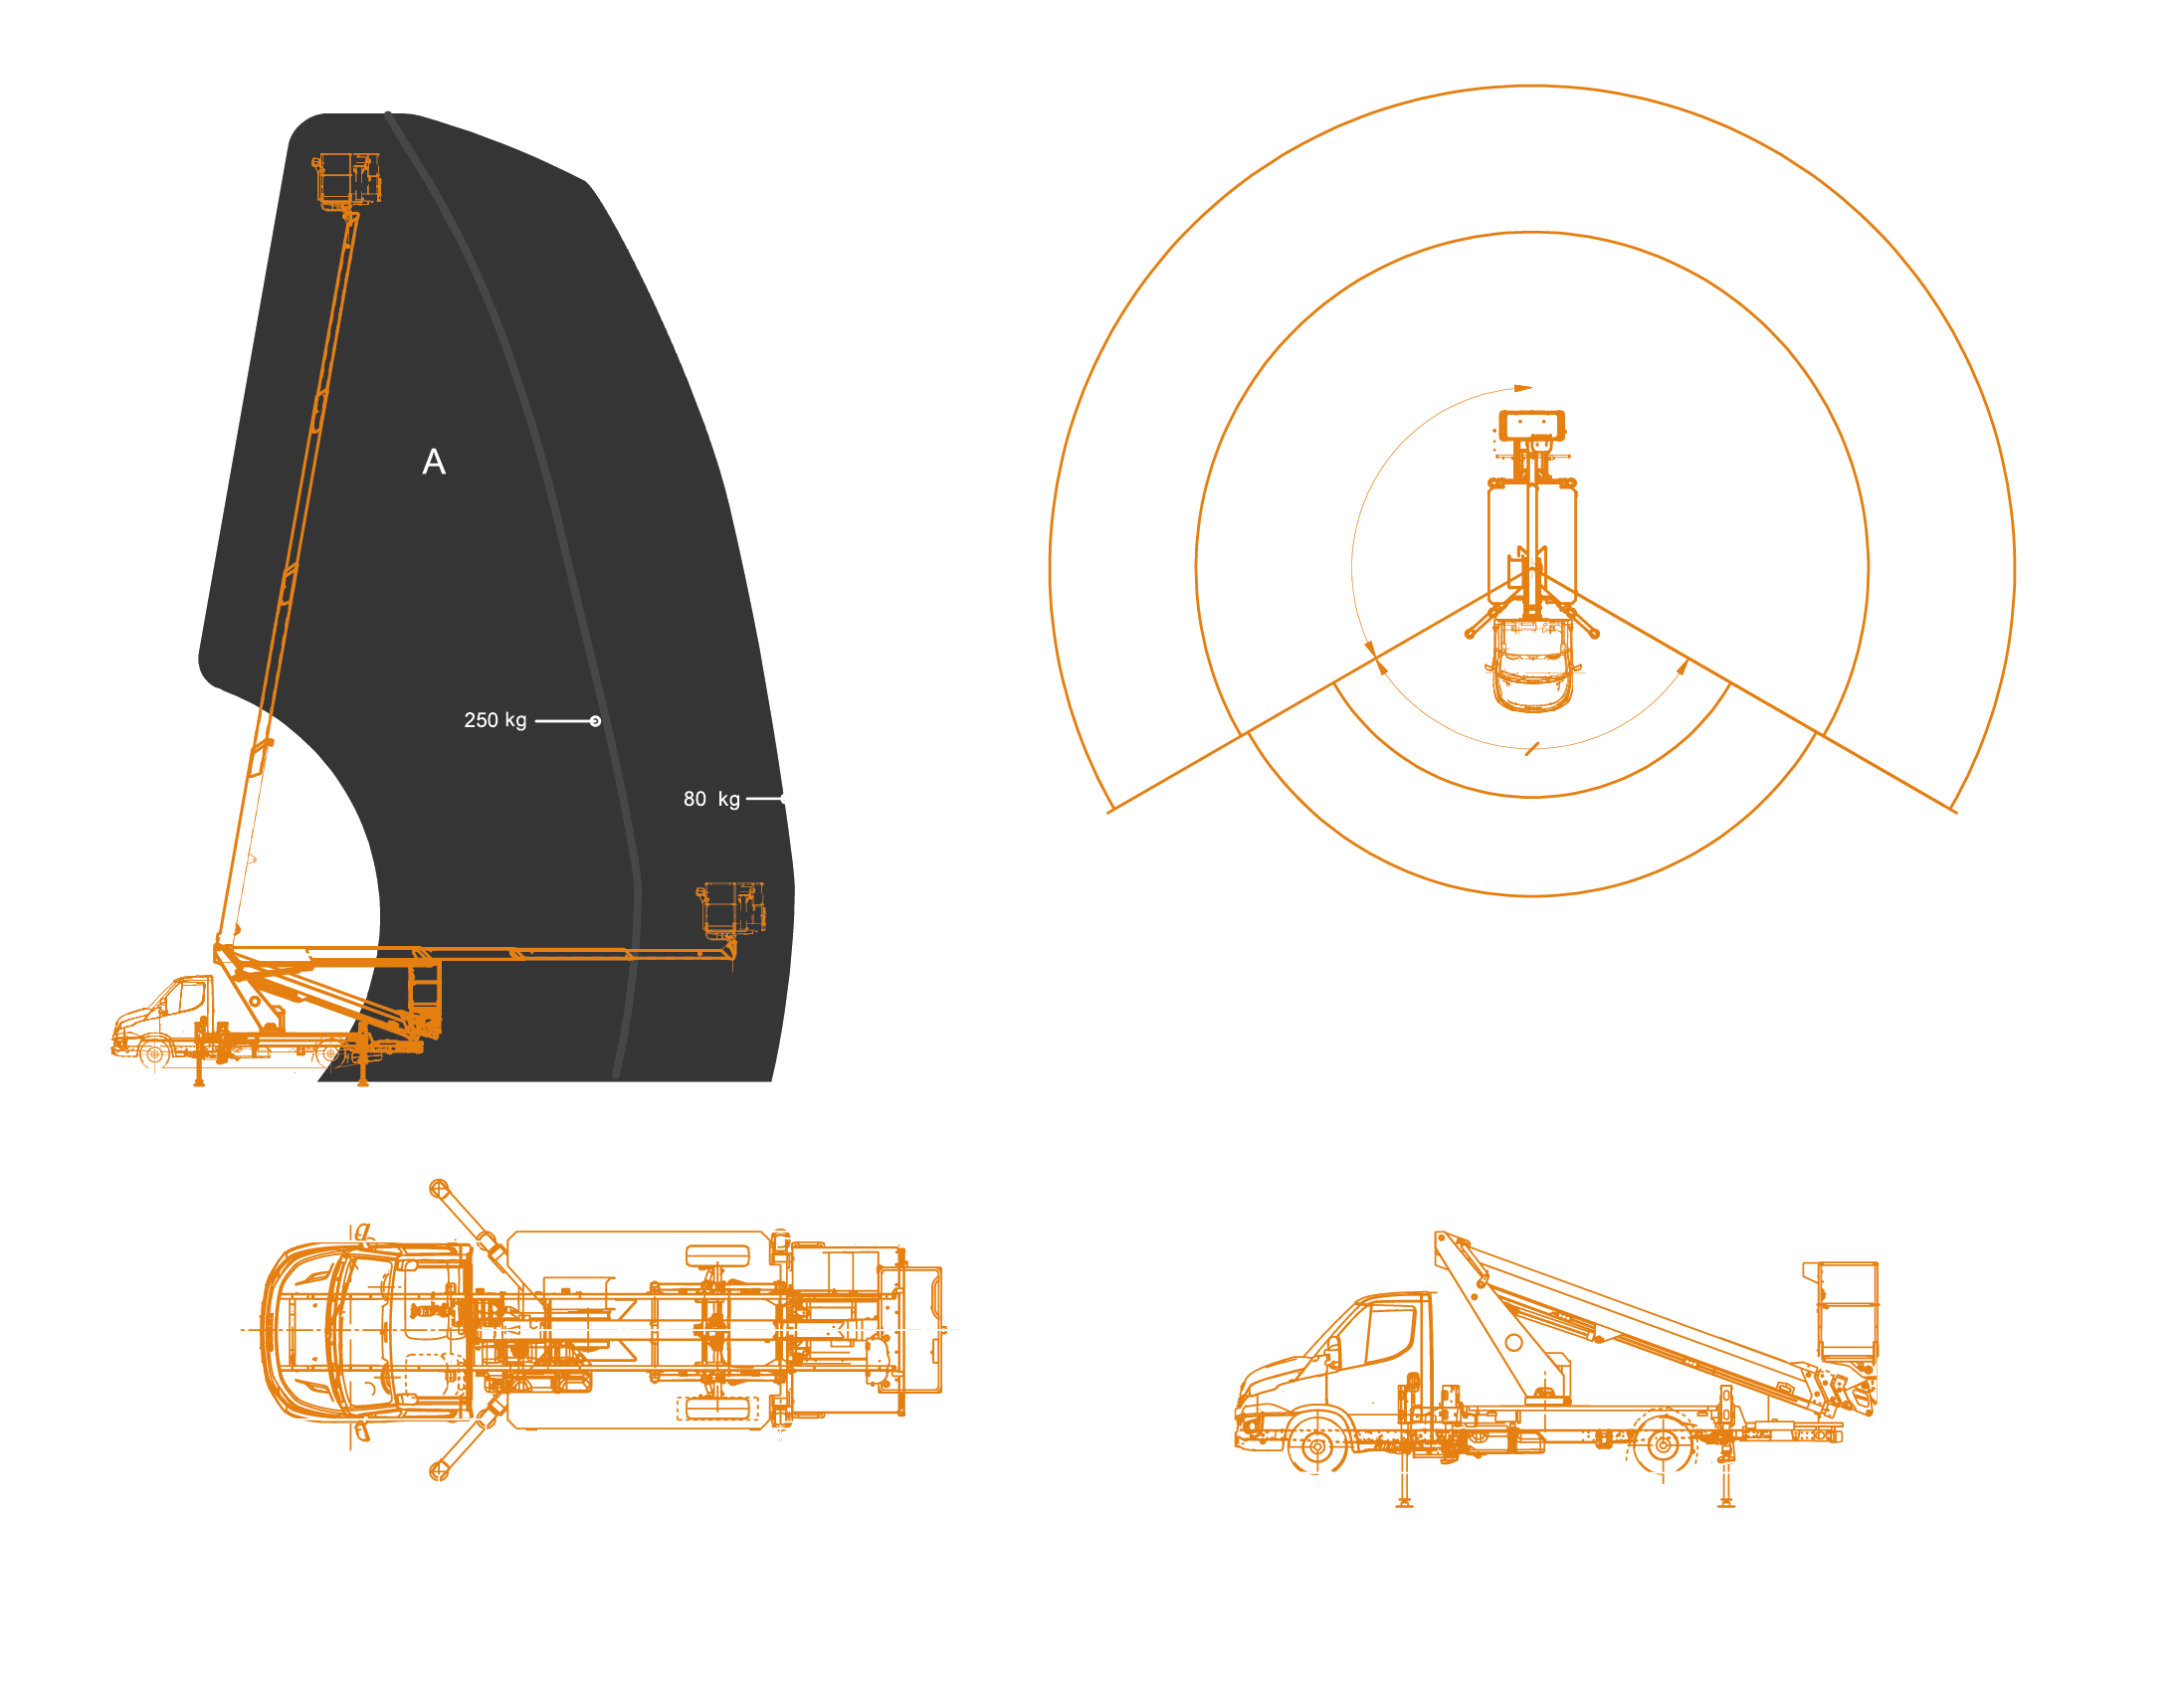 Scorpion-2313-IVECO-working-envelope and dimensions